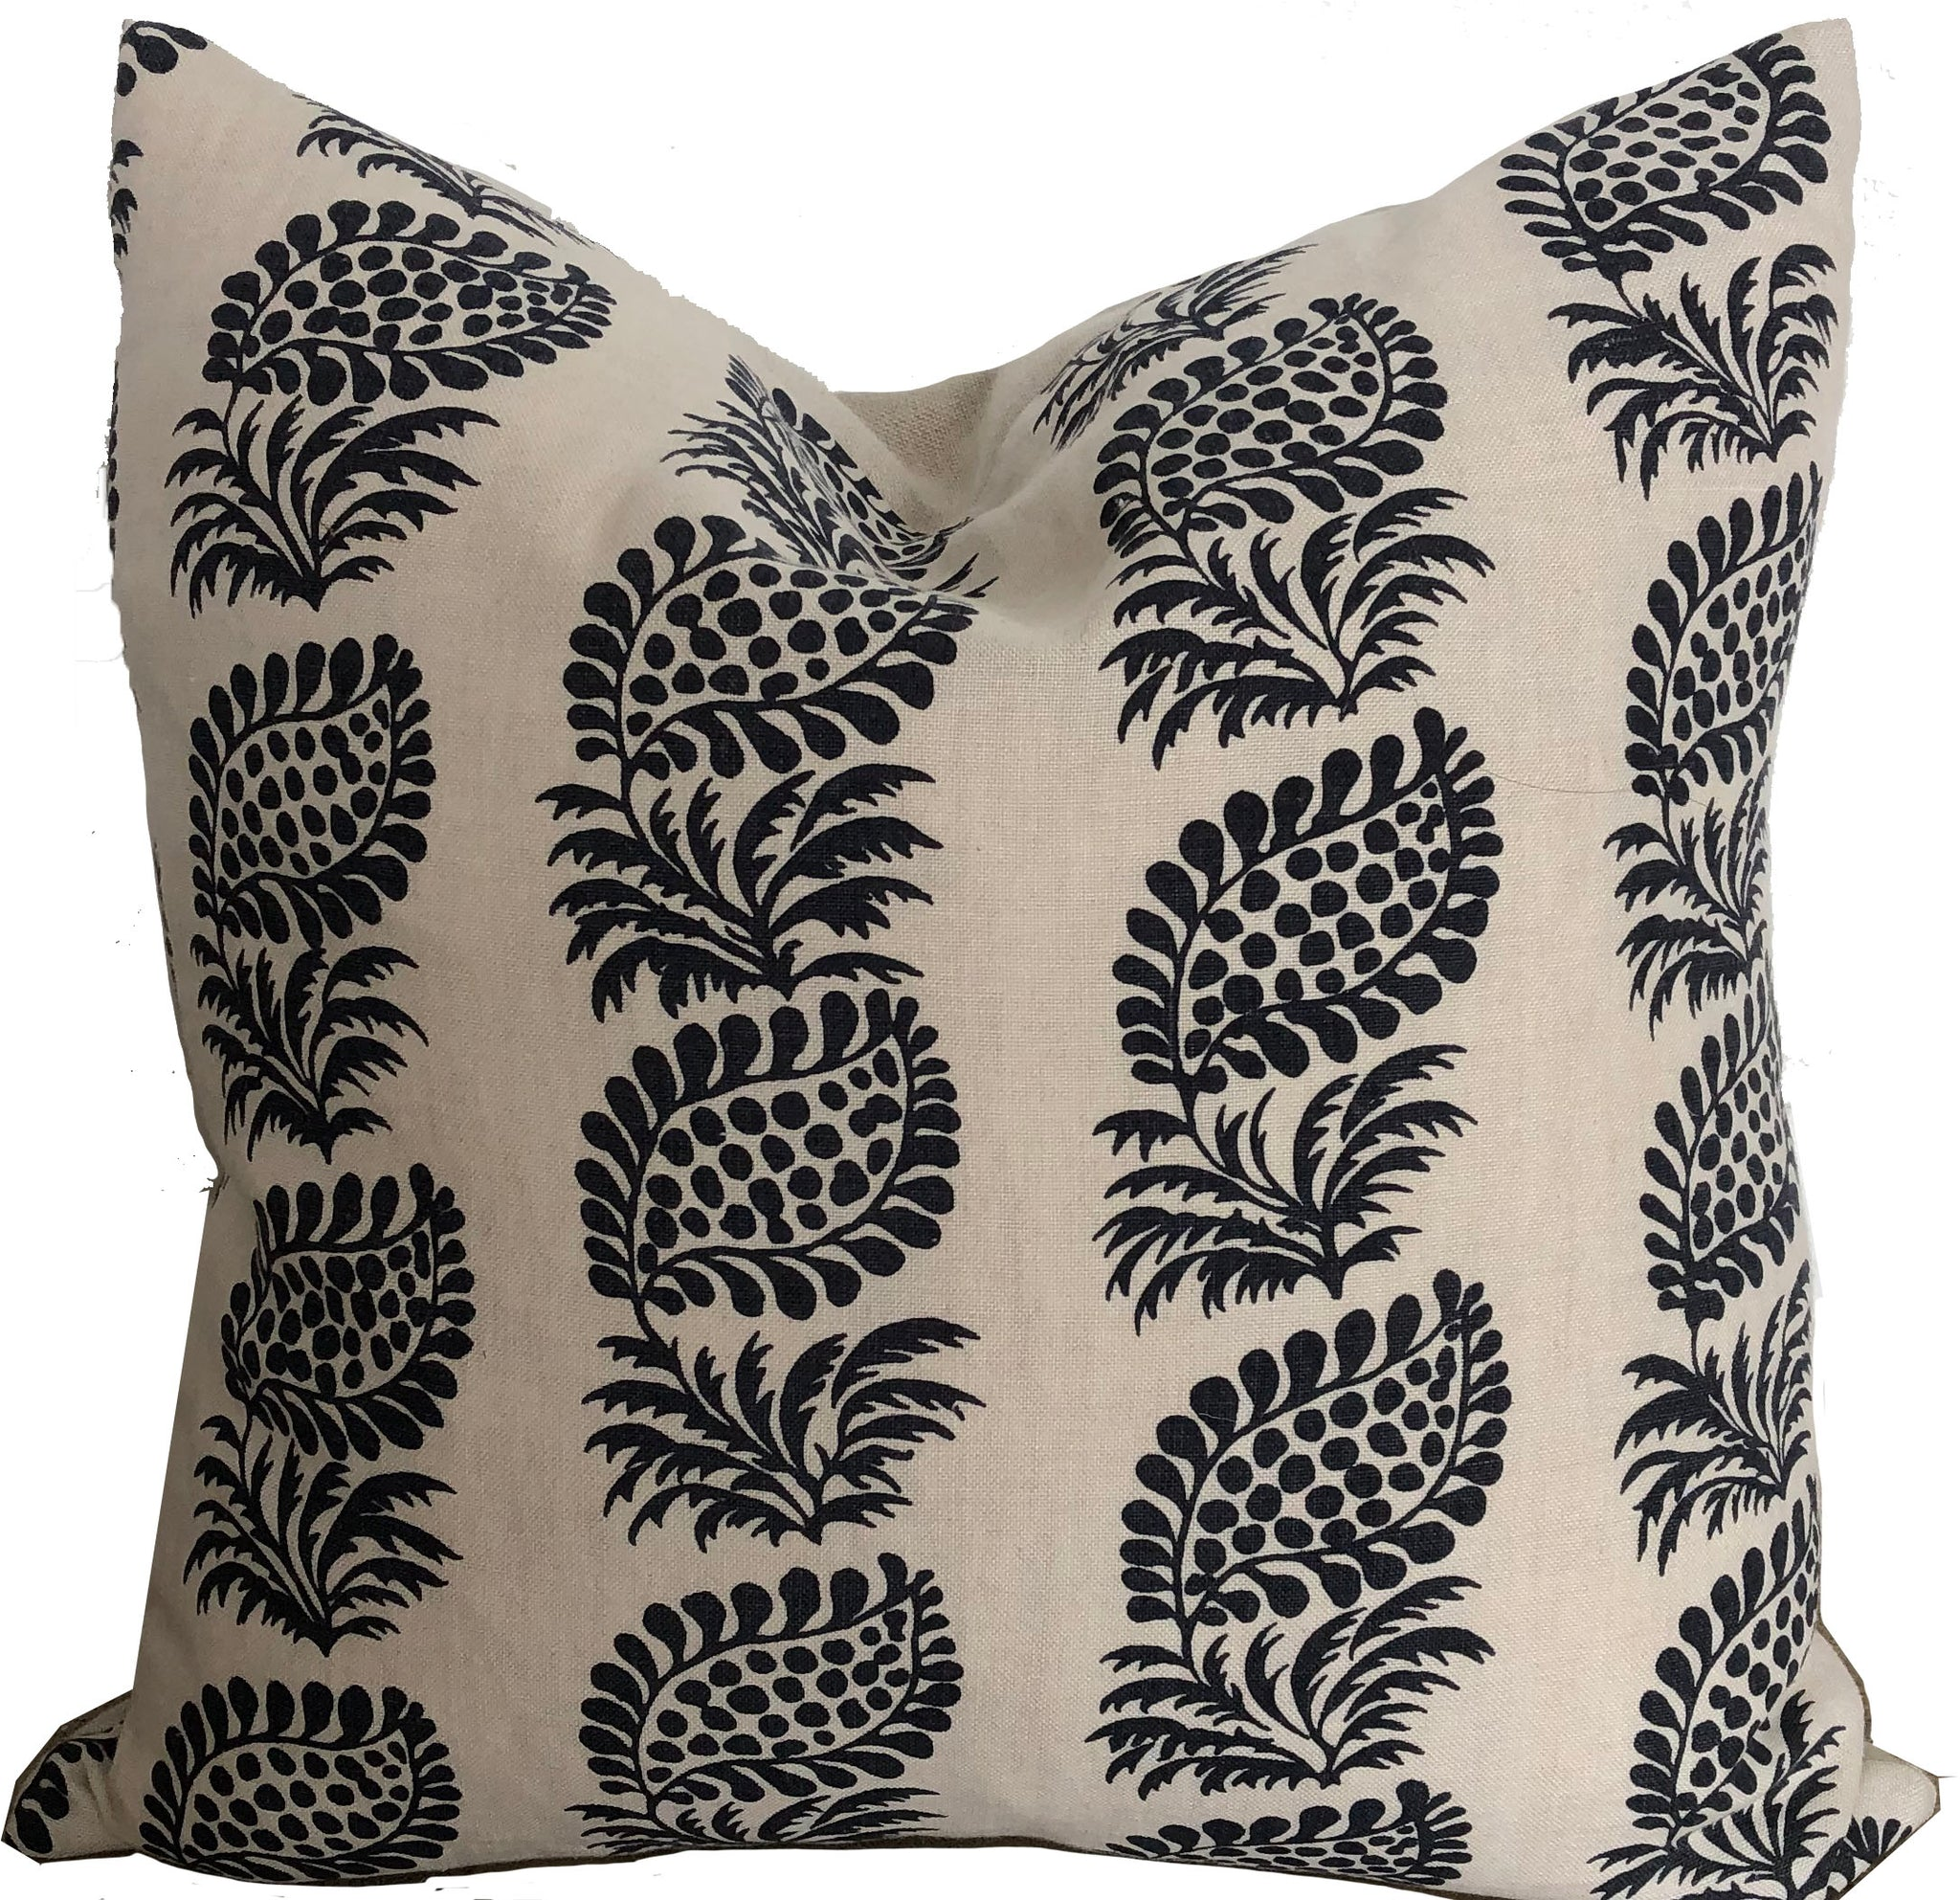 Indigo Paisly Pillow